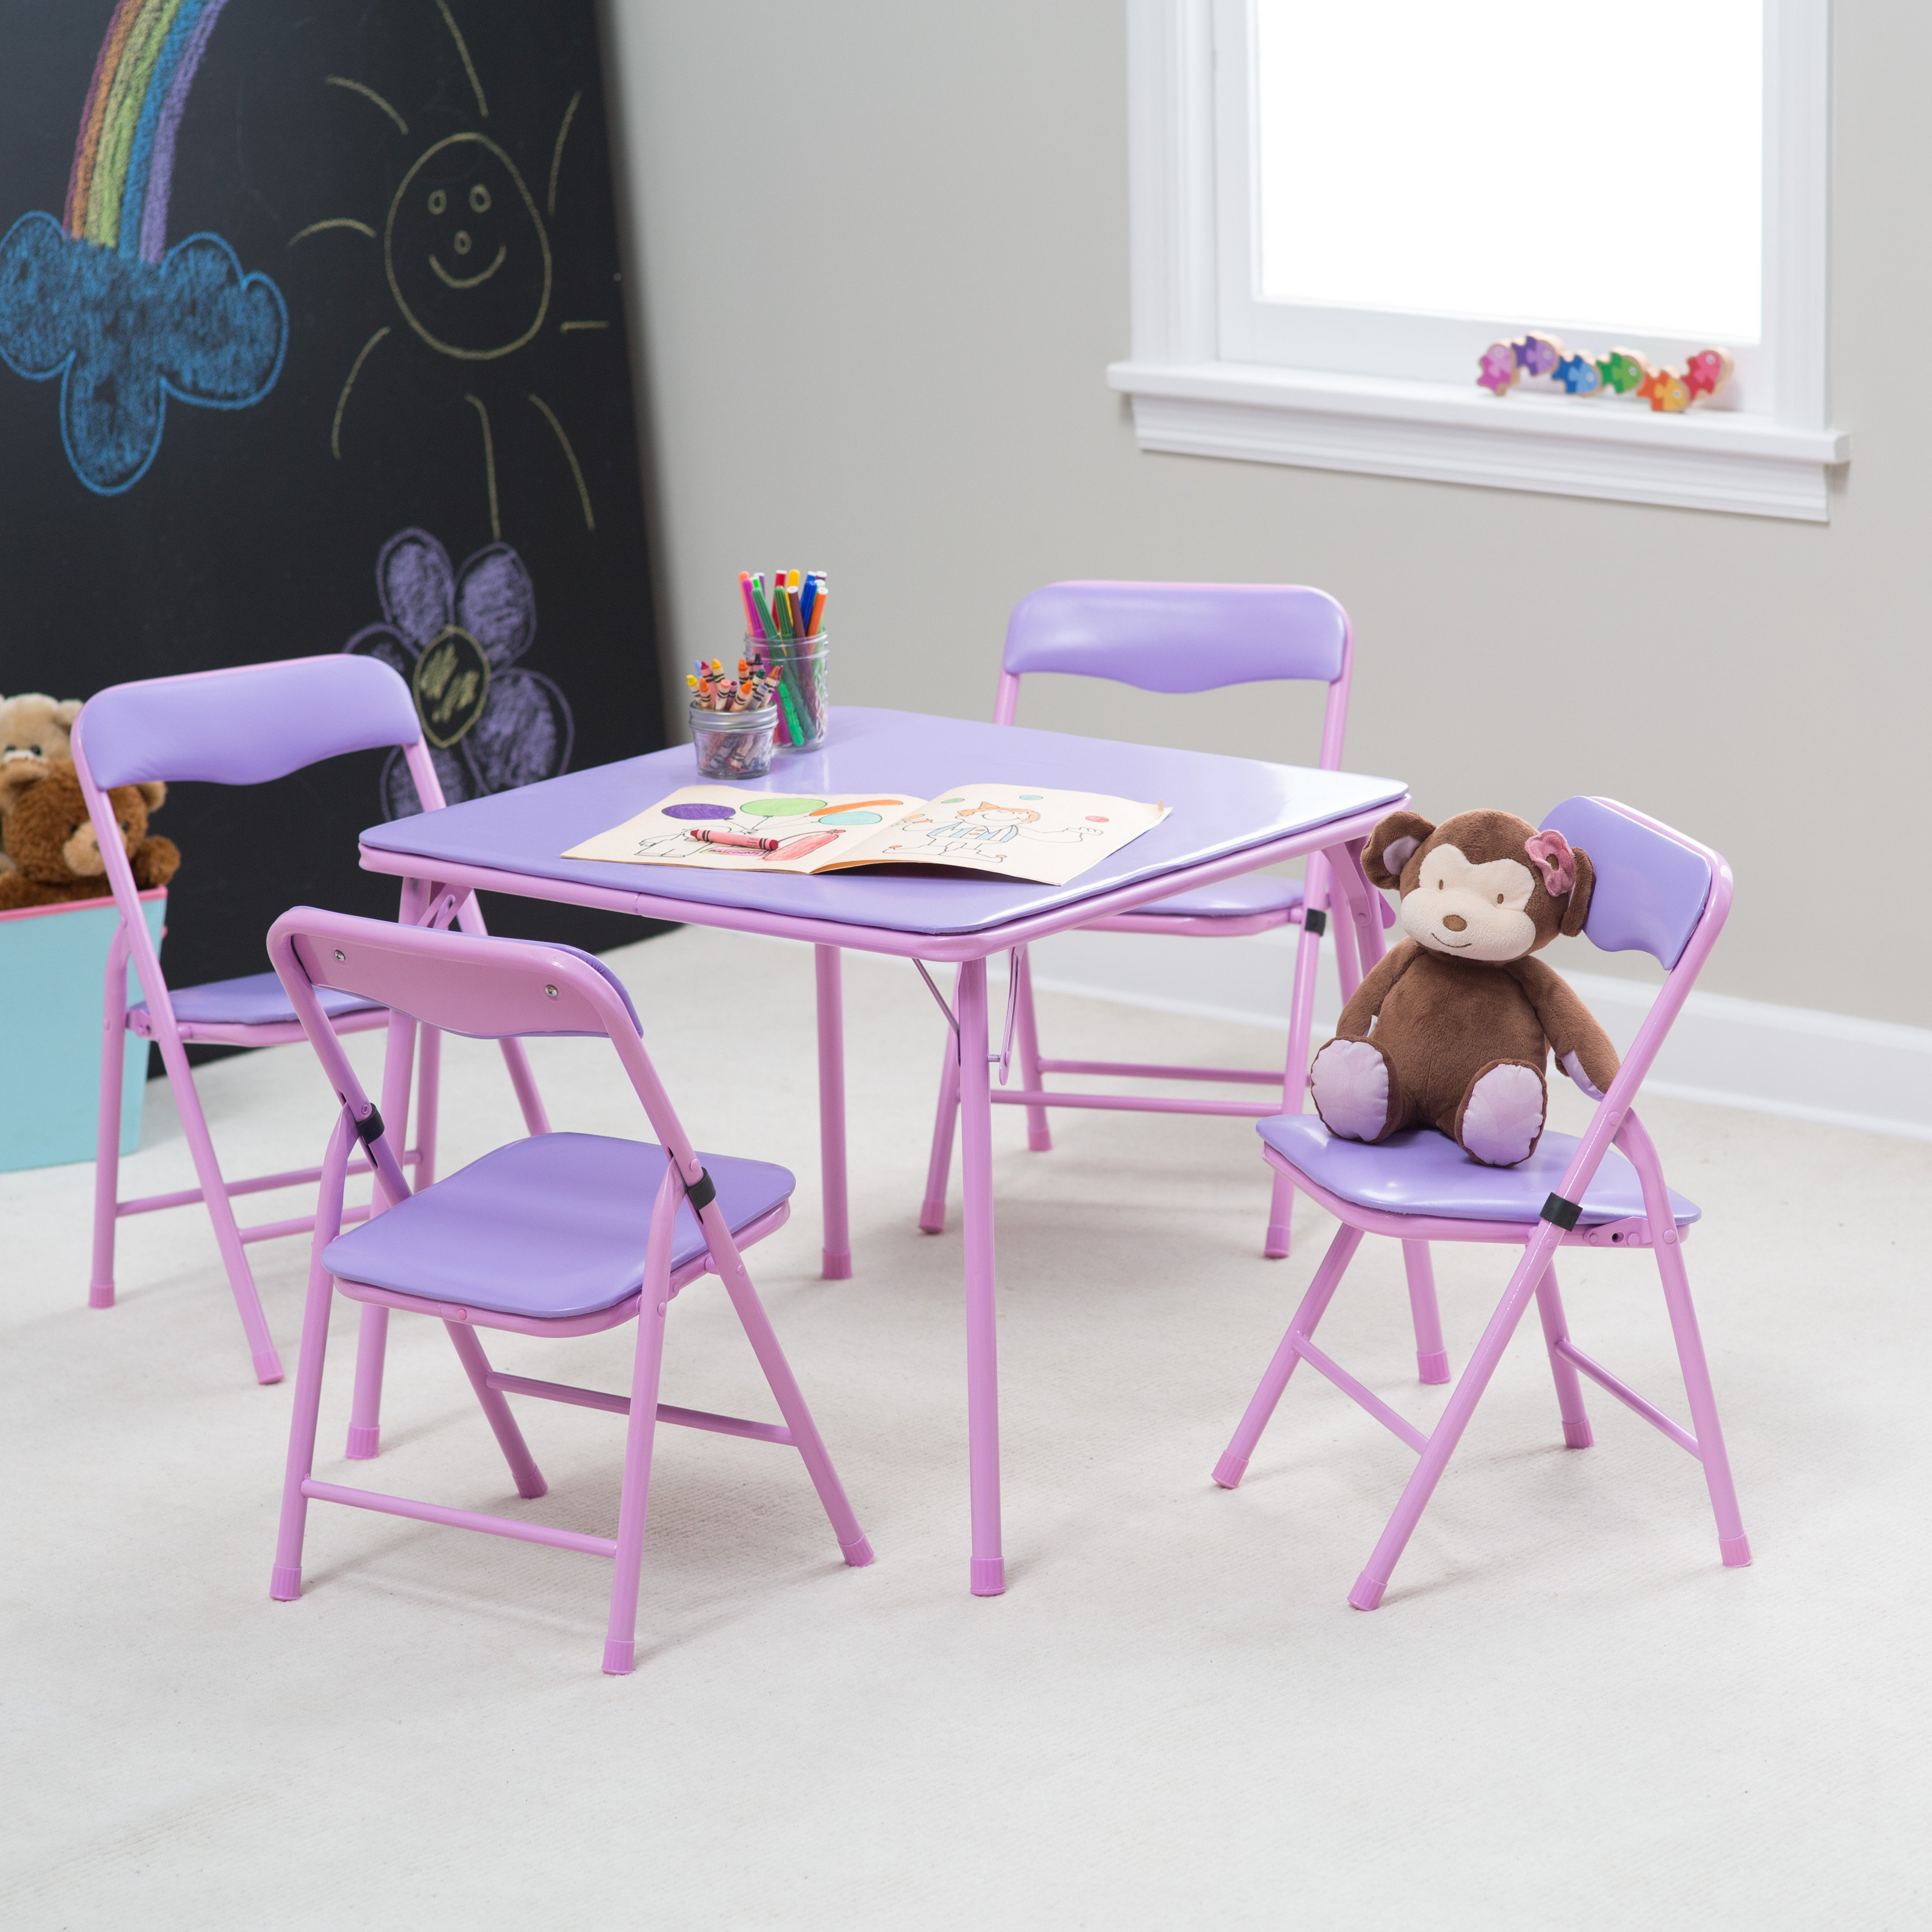 Showtime Childrens Folding Table and Chair Set - Walmart.com